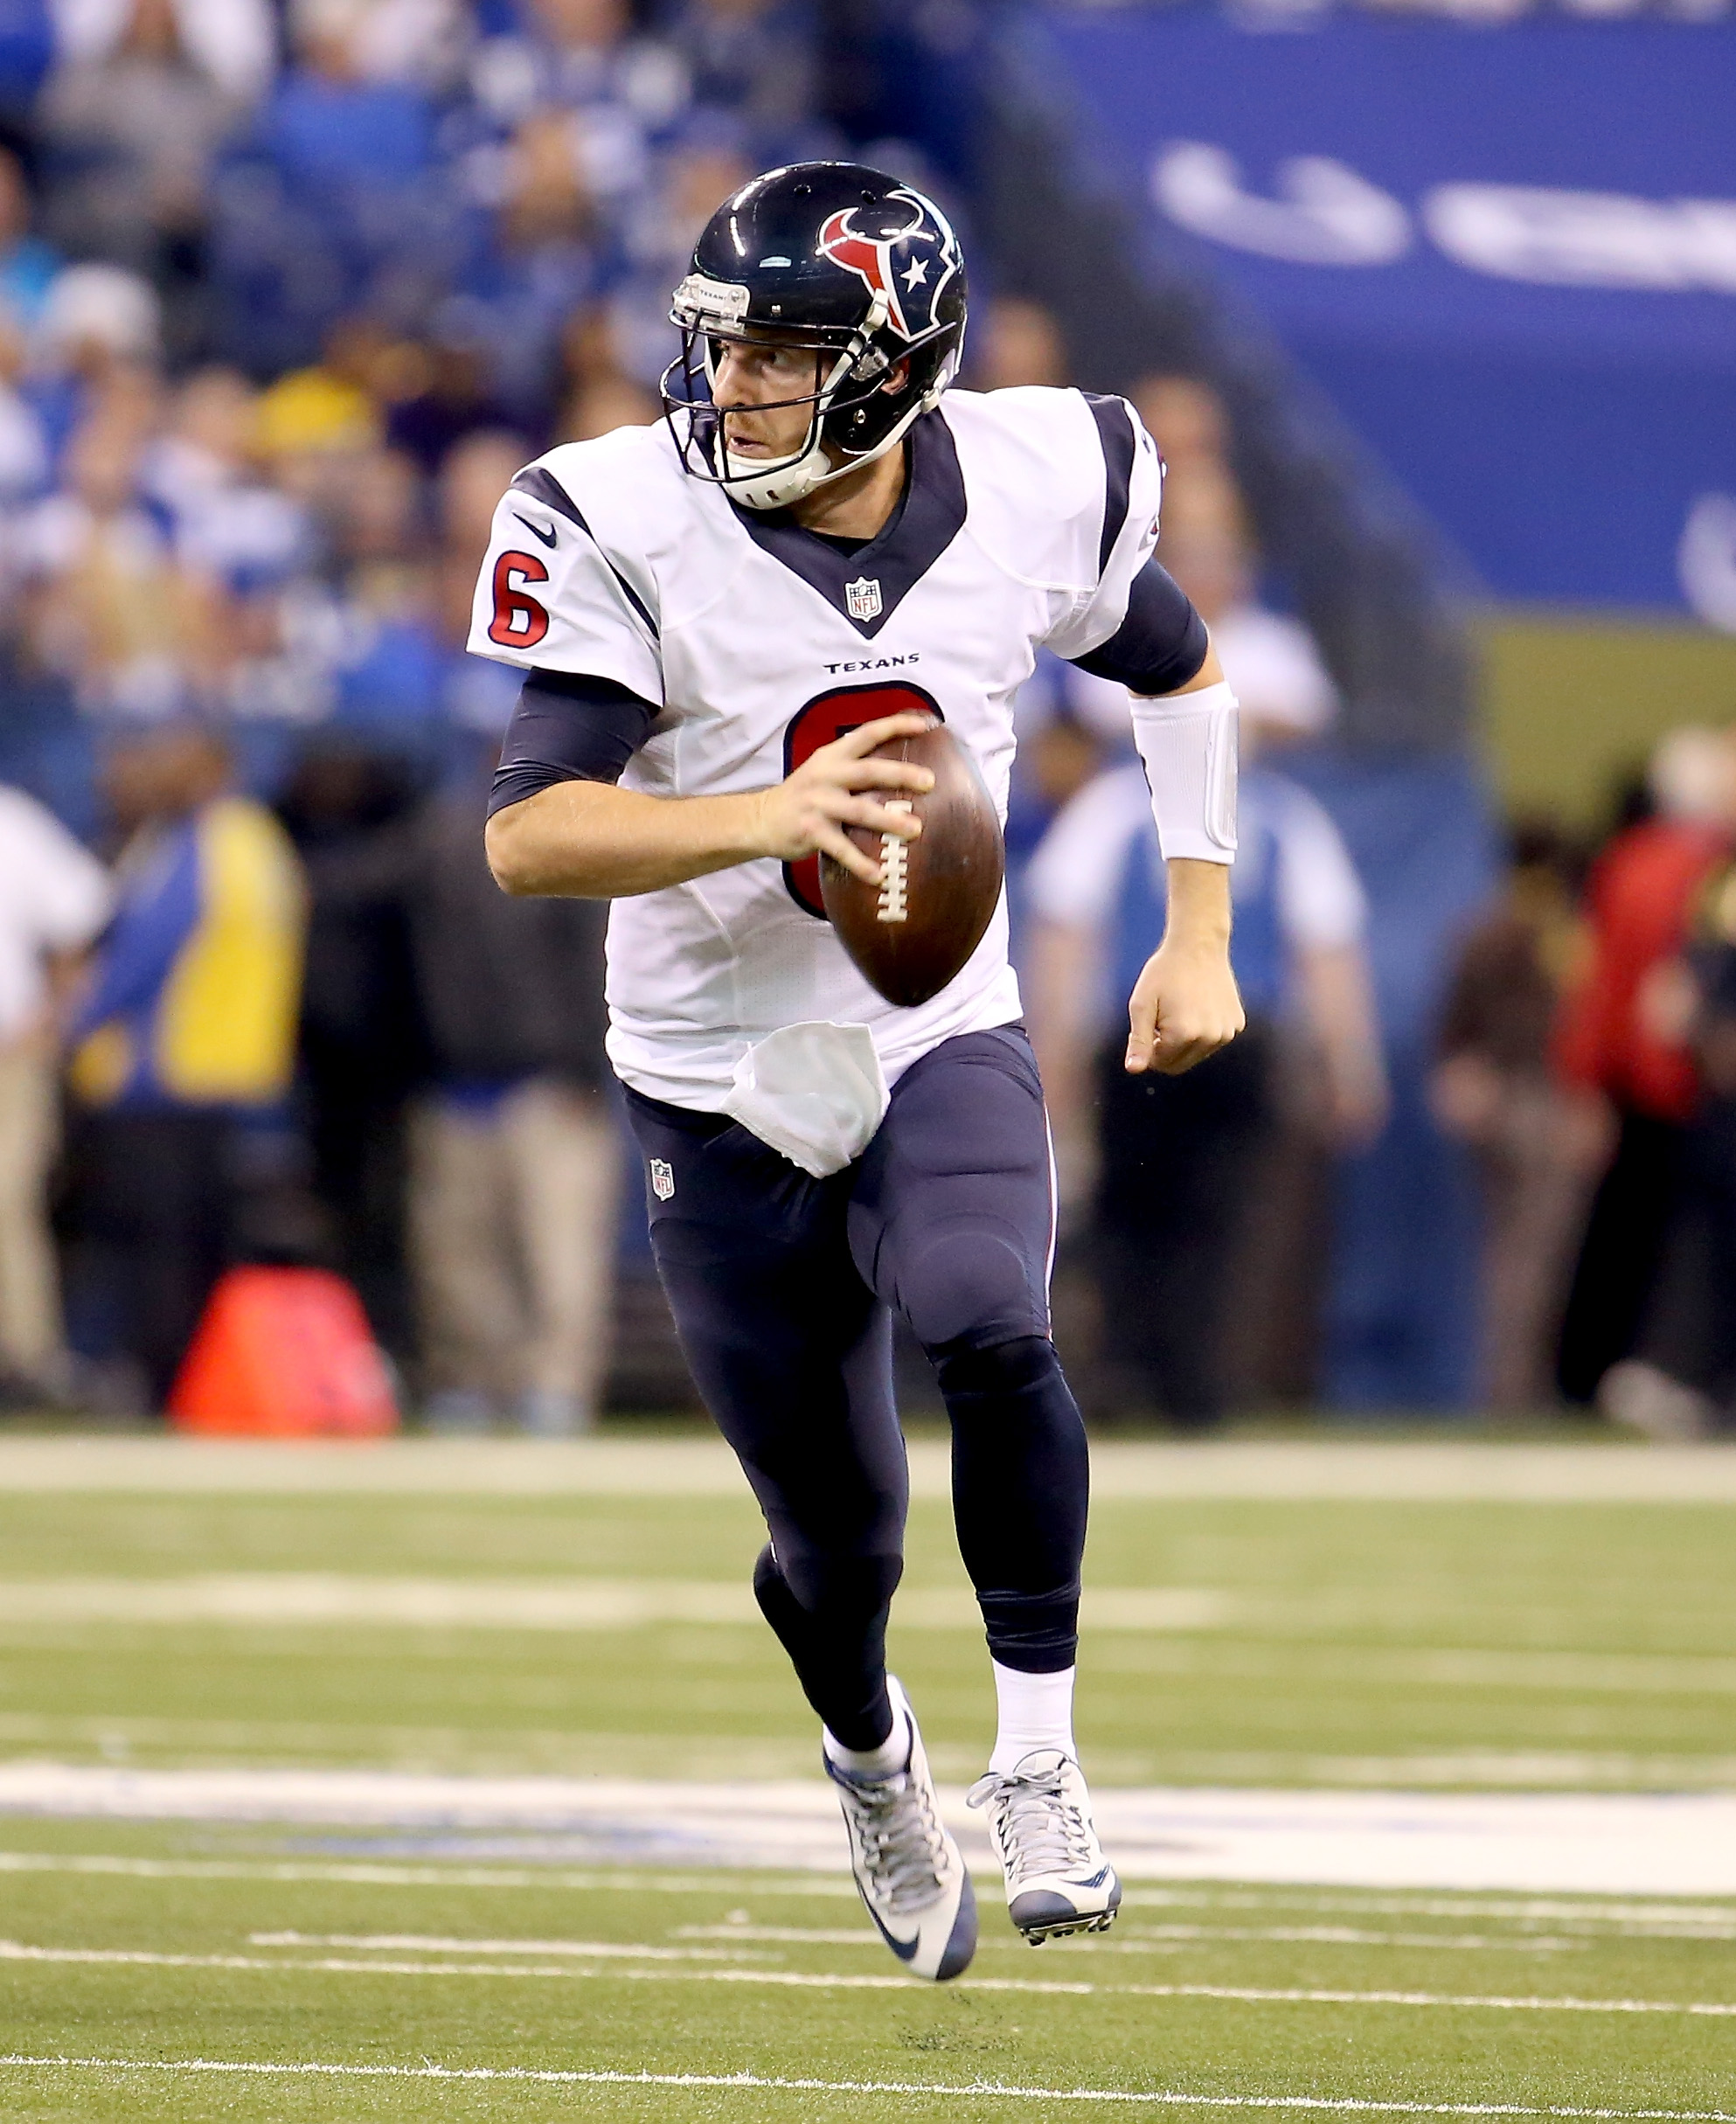 Newly acquired Bills quarterback T.J. Yates in action with the Houston Texans. (Photo by Andy Lyons/Getty Images)